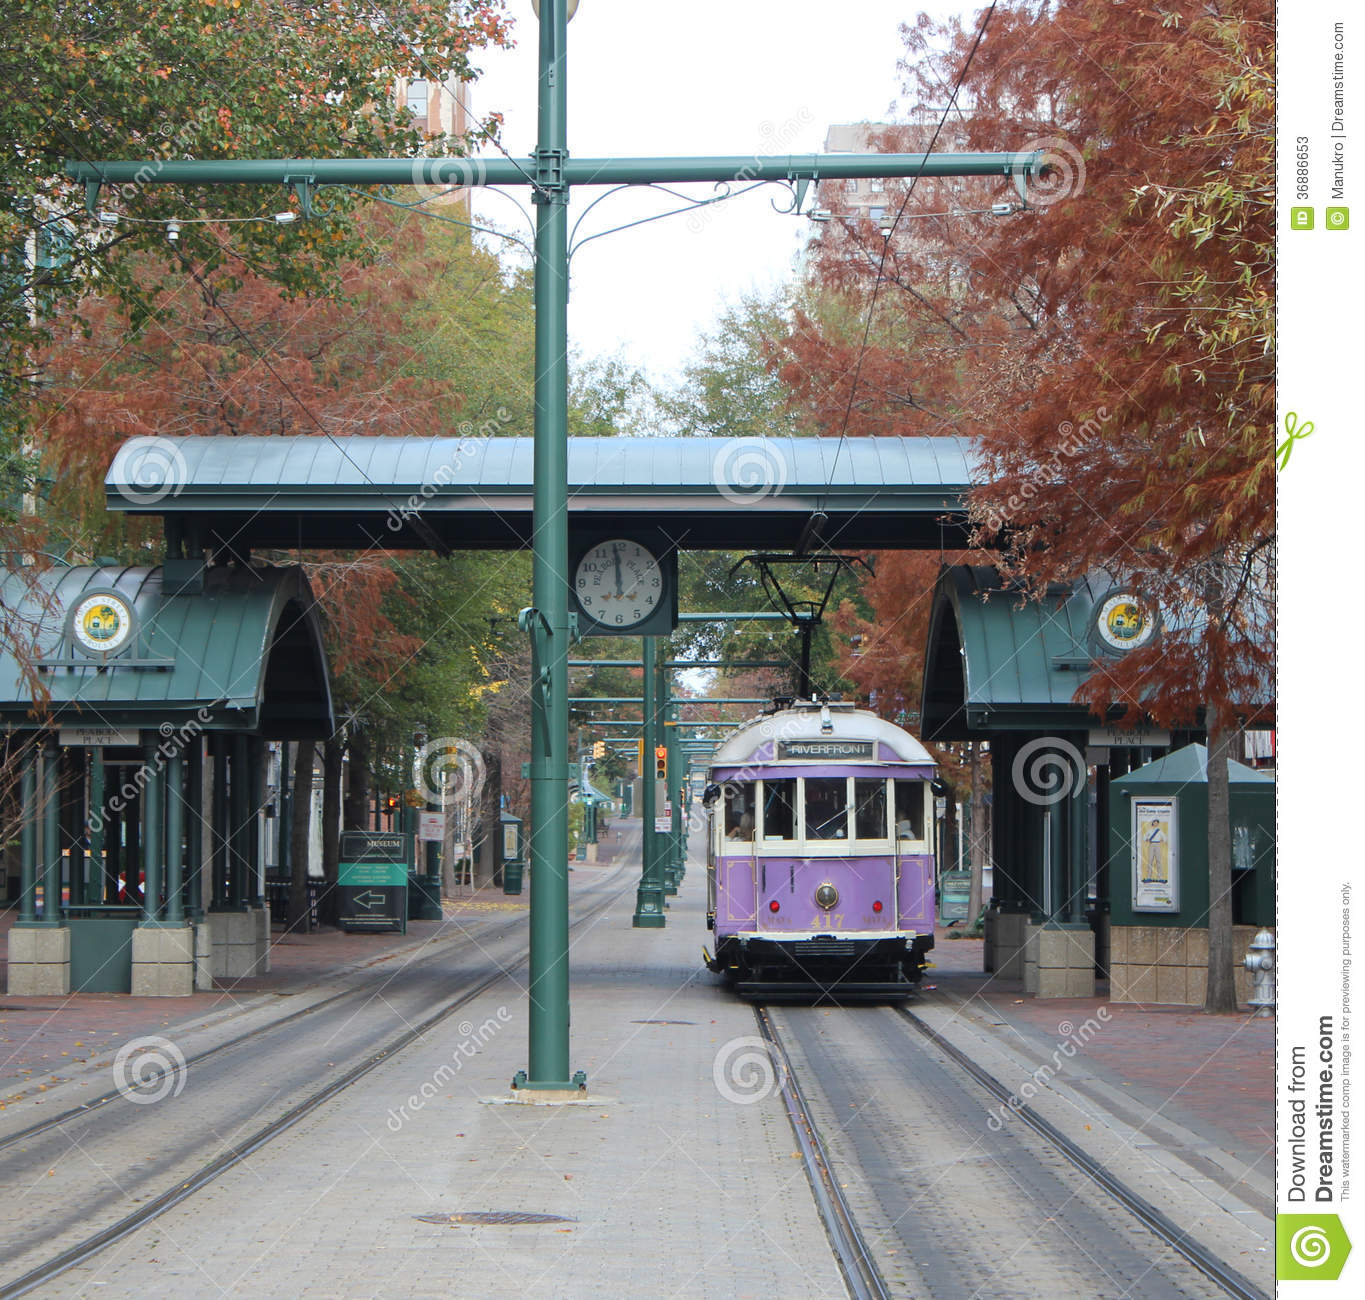 Download Tram a Memphis fotografia stock editoriale. Immagine di tram - 36886653